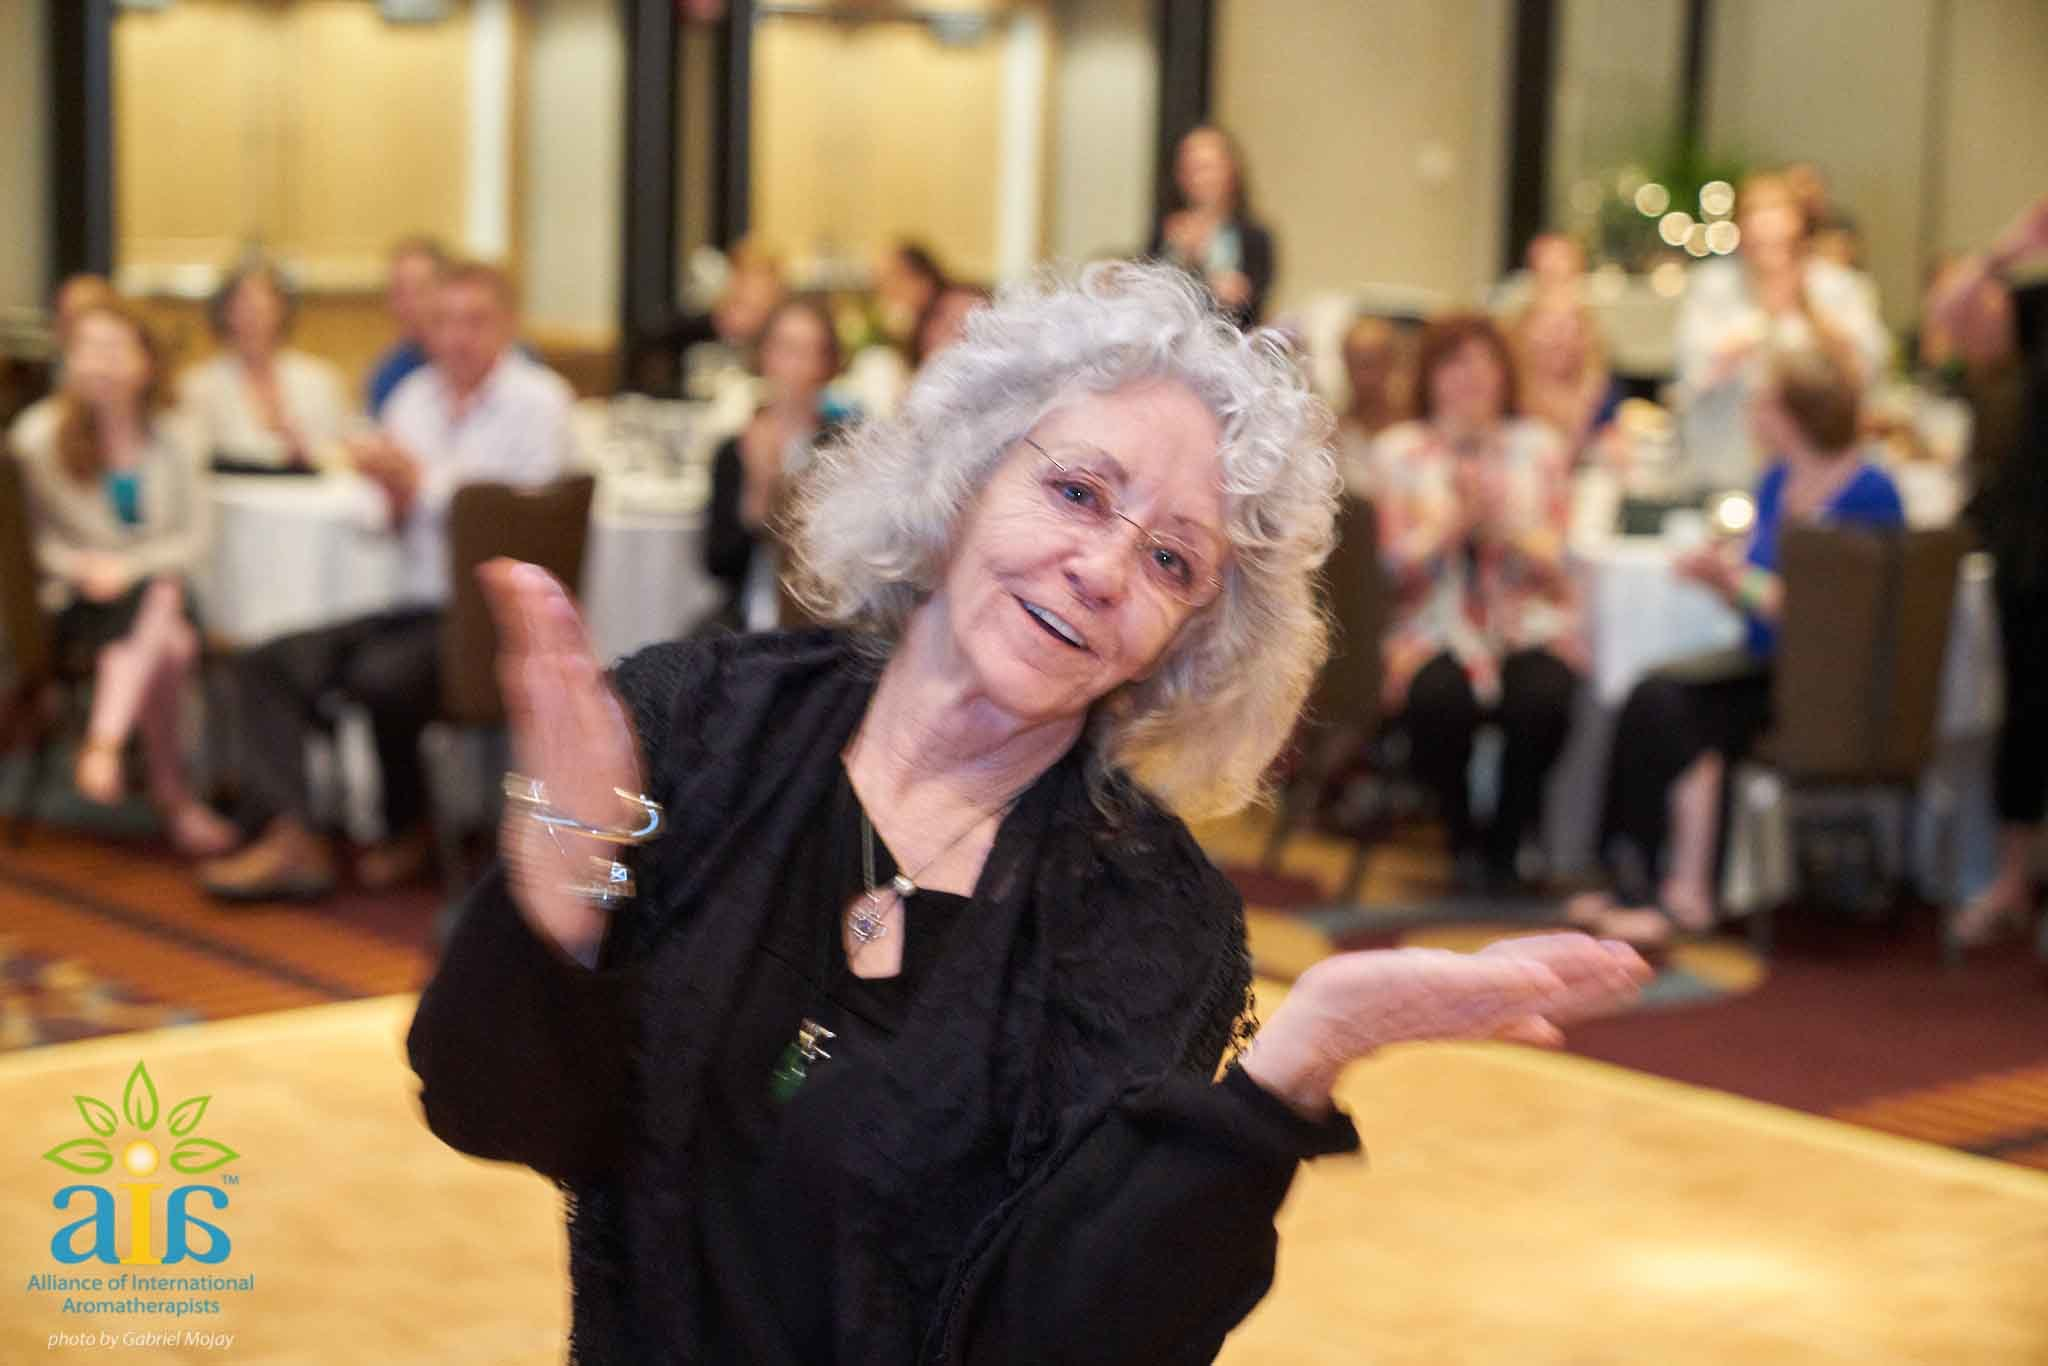 Sylla Recognized for Outstanding Contributions   At the Alliance of International Aromatherapists Conference this past August, many friends and colleagues had the pleasure of seeing Sylla win win this year's Outstanding Contributions Award. Thanks to our student's idea, we managed to get it on video. Check out our Facebook Live Video and see what it was like to be in the room during Sylla's second most happiest moment of her life. You'll also learn what her most happiest moment has been. Here is Sylla's response: I finally feel seen. I have worked 40 years in this field and accomplished a lot, and I feel like for the first time my story was told and I was honored for my efforts. When I started teaching long ago it was my dream to make a difference in the world of aromatherapy. As I went along and created Atlantic Institute of Aromatherapy, I had more ideas, wrote a book, hooked up with safety experts, went to Purdue and France chasing my dream and teaching others along the way.  After 9/11, I was moved to act, the UAE, Inc. formed organically and was supported by the community. Now the organization has been reinstated for the future generations! Getting the award and listening to the 11 mins of accomplishments was like a dream come true, I amazed myself(!) and felt completely recognized for the first time ever in my aroma career.  Watching the video later I realized there was this slideshow playing behind me, little did I know the care that Lora Cantele took to make the presentation. As the conference went on I learned how much some wanted me to win this, and how much they felt I deserved it long ago. I also learned that many did not even know all I have done in my 40 years. I feel completely seen and heard for the first time. With this honor, I feel that I leave a good legacy and hope to inspire others. I am so glad I was alive to say this! I have never felt so loved, honored and appreciated, in my life. I lovingly accept all the recognition and feel like my cup is overflowing again.   Thank you everyone who voted for Sylla. We hope to see you at the next Alliance of International Aromatherapists Conference in 2019!